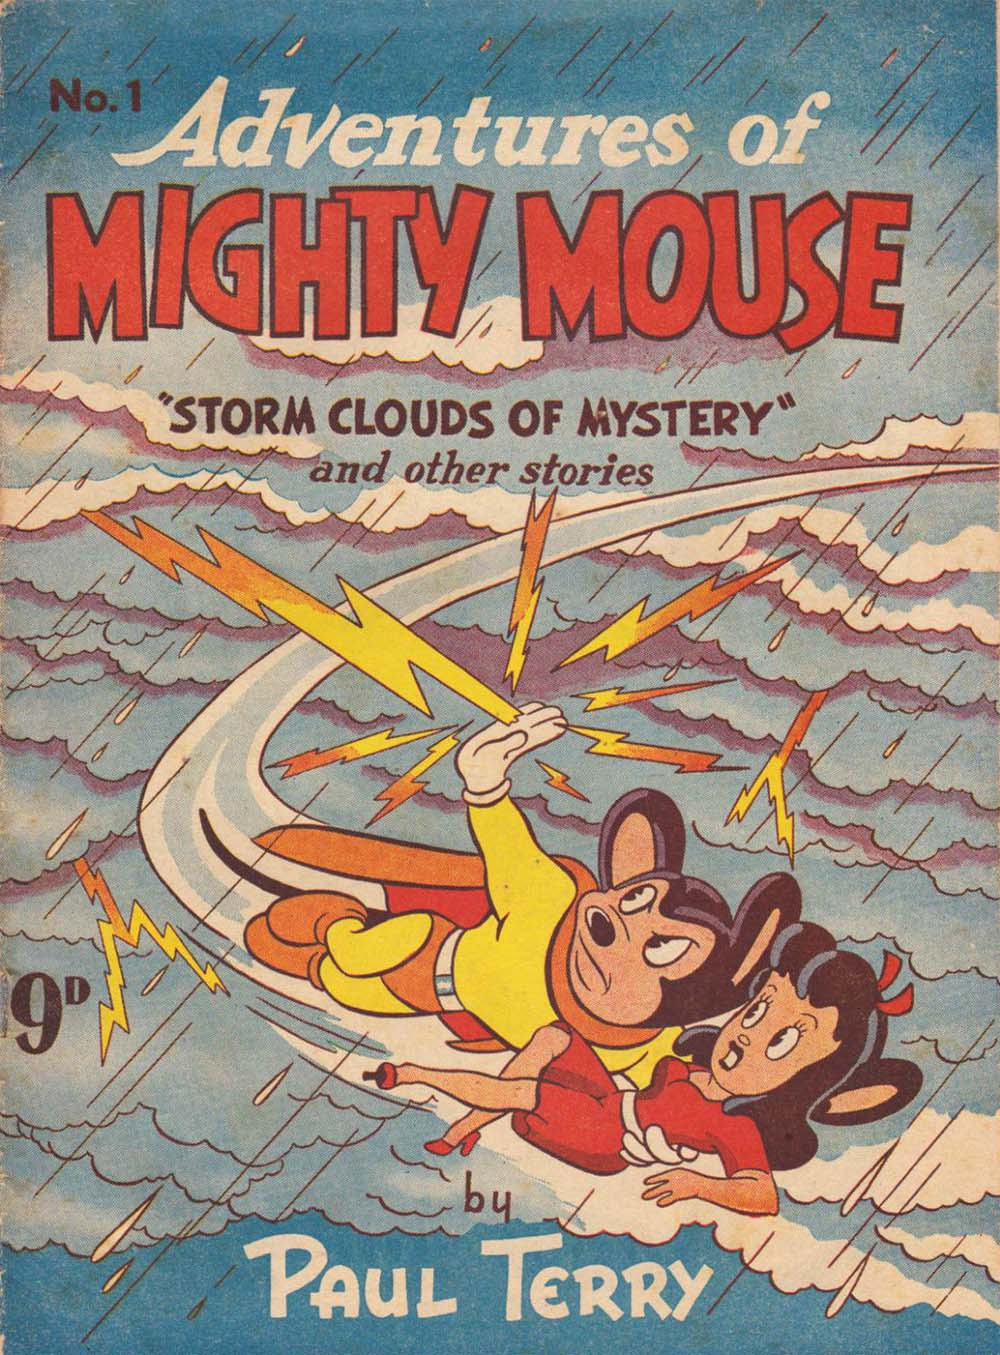 Adventures of Mighty Mouse